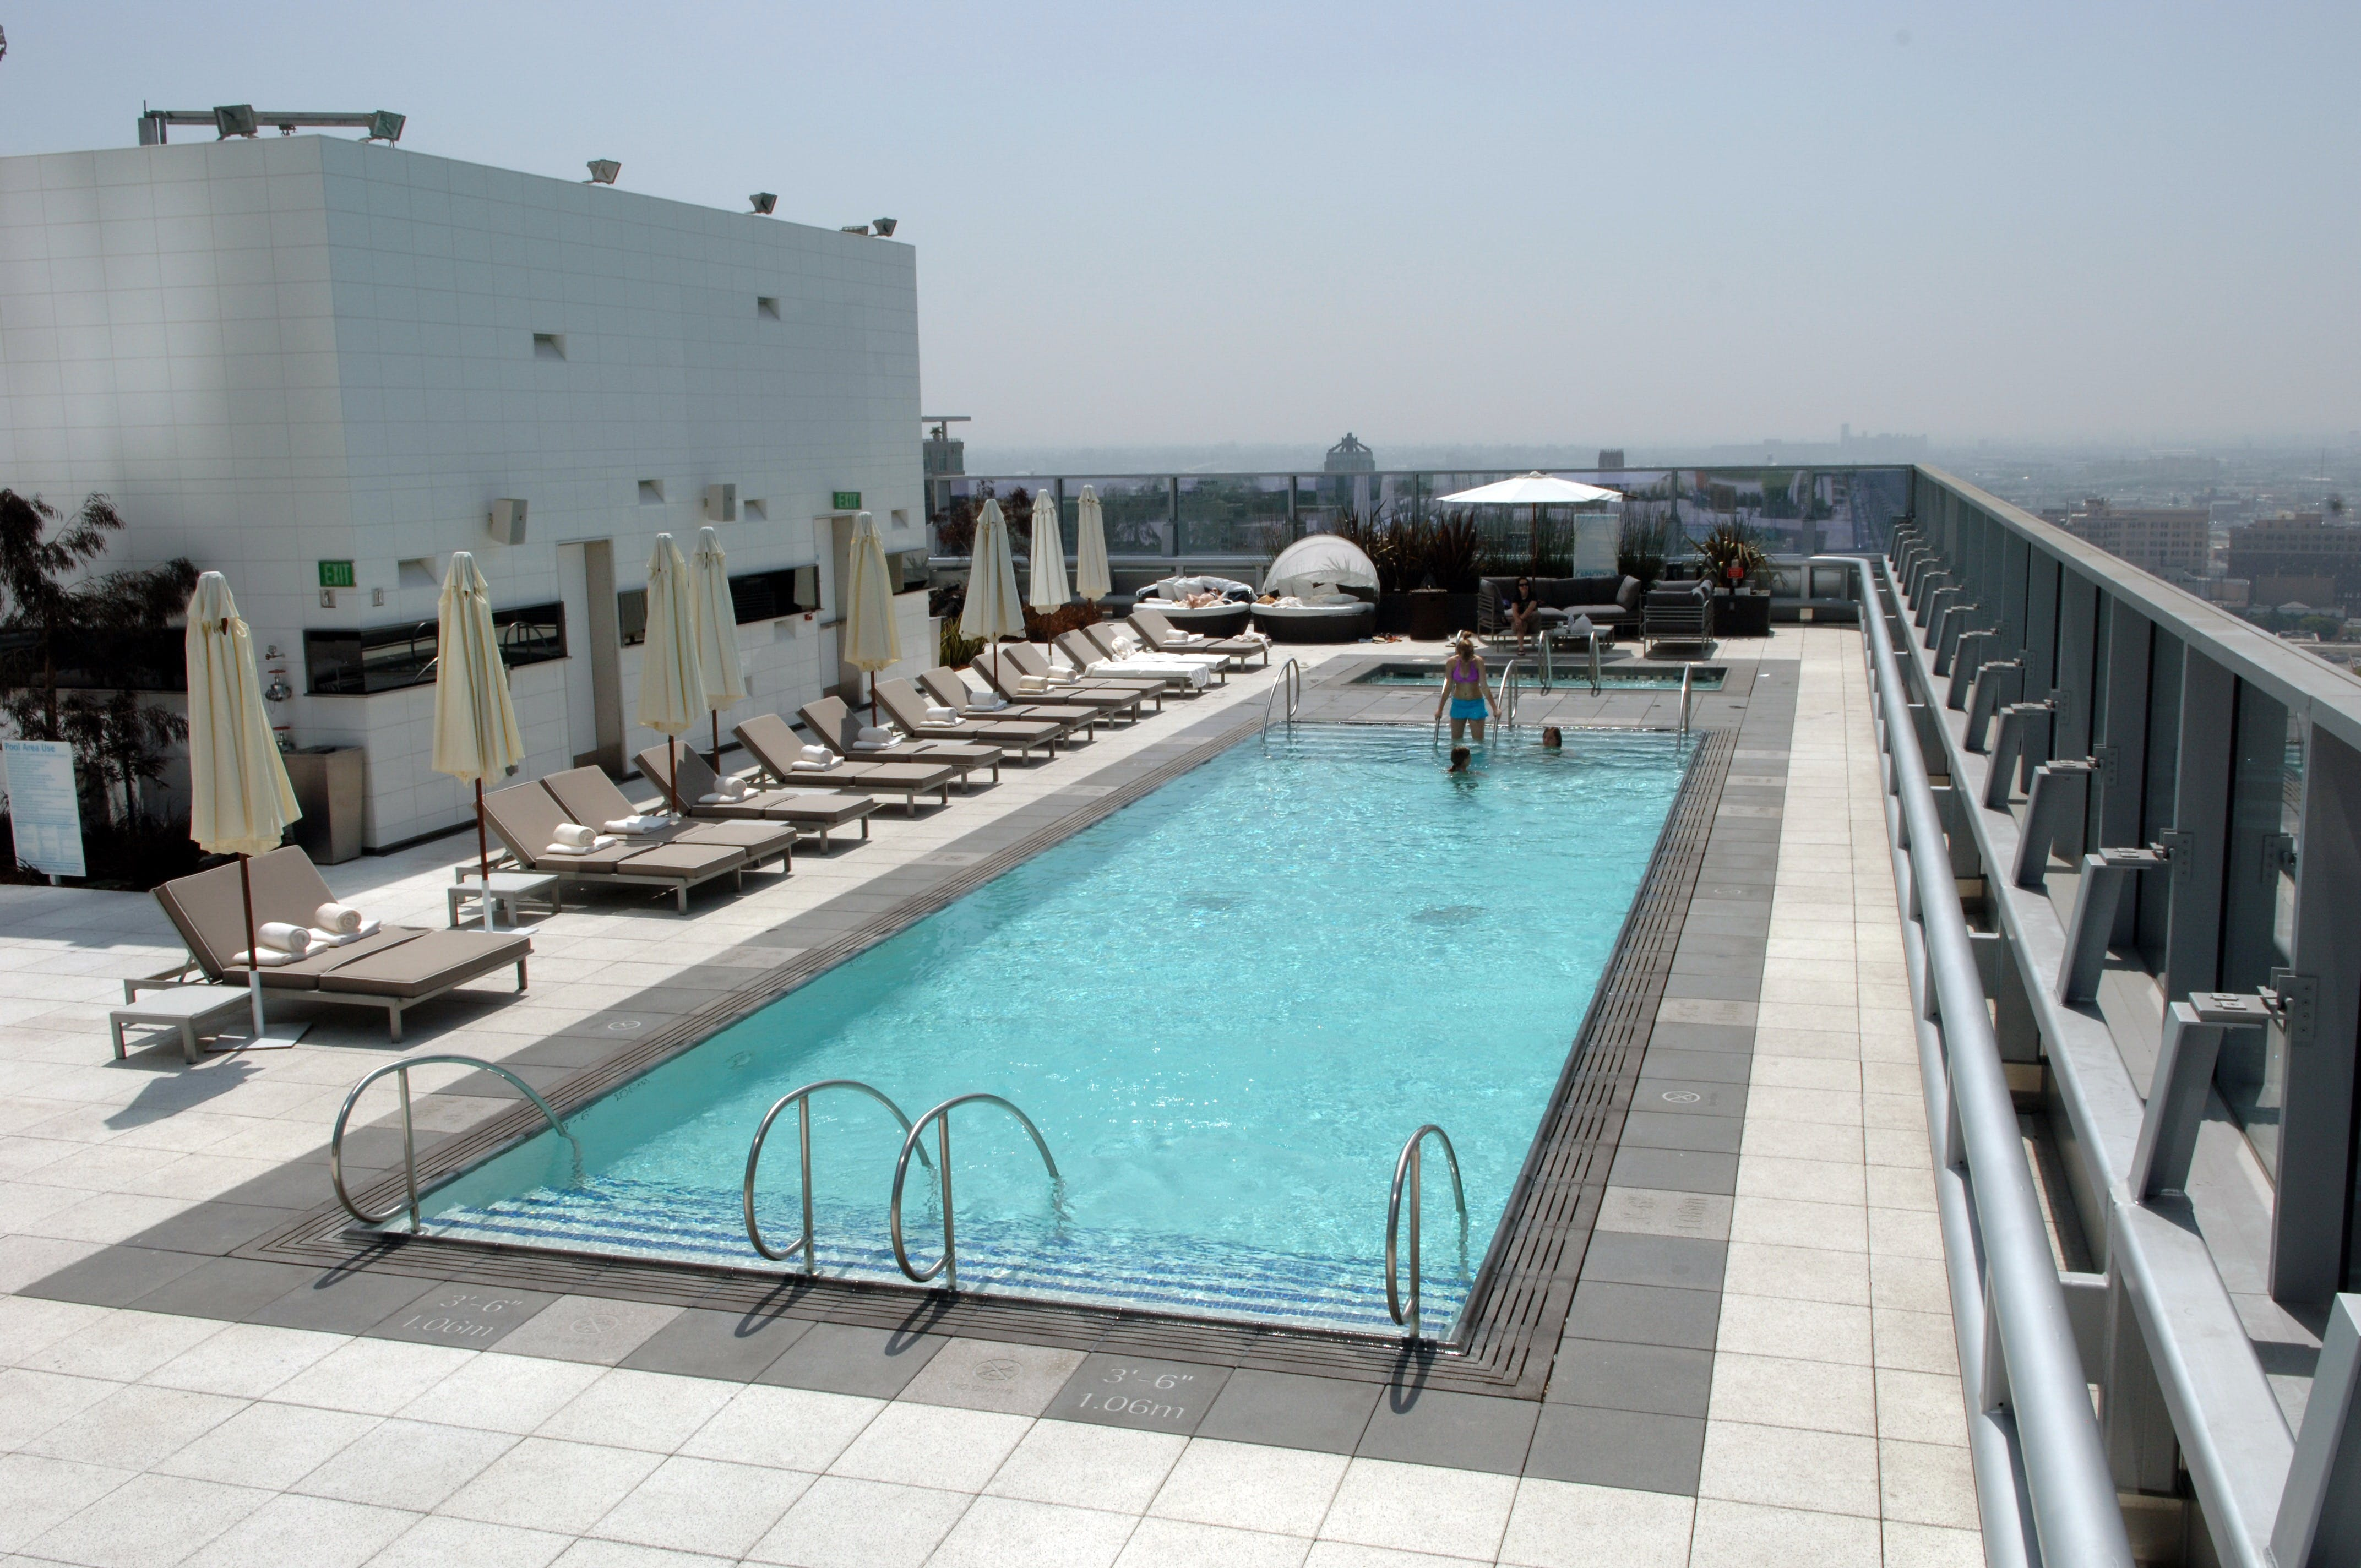 La live ritz carlton hotel marriott hotel rooftop for Pool design engineering